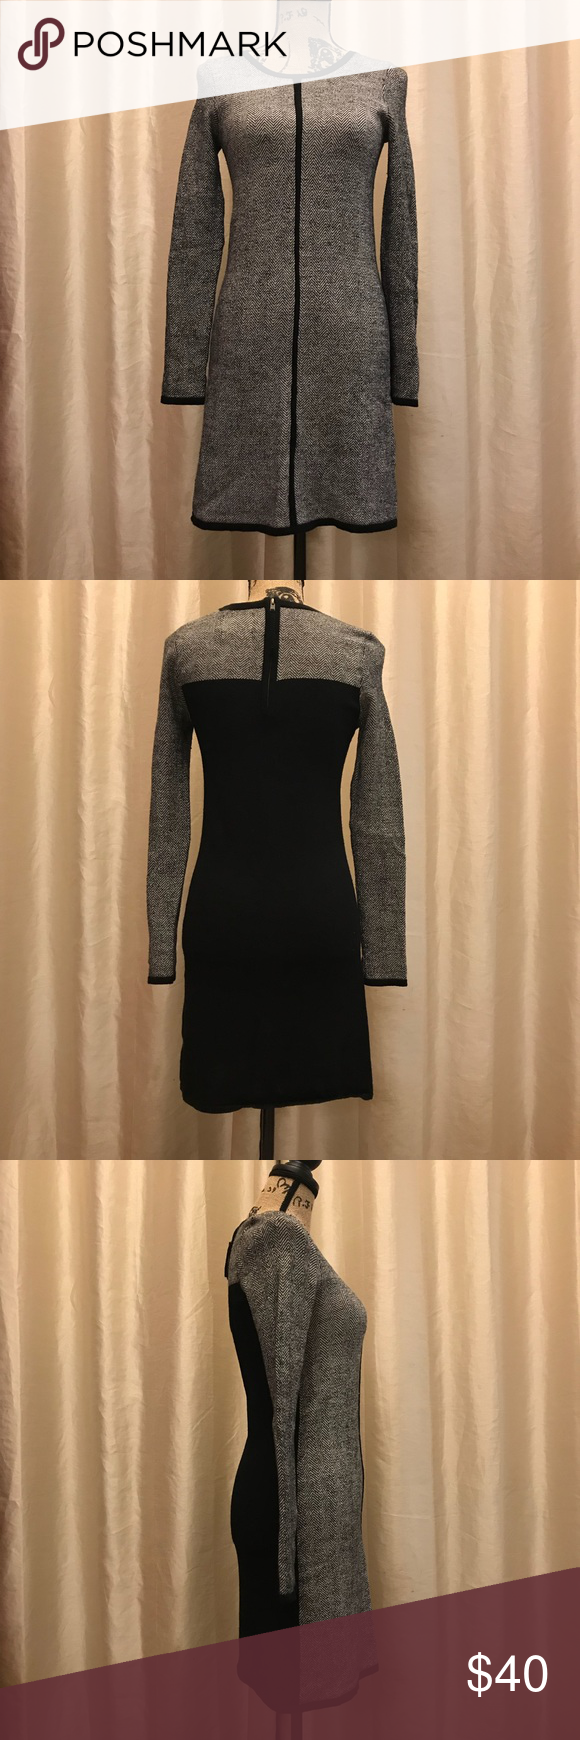 49a7e0933e8 Cynthia Rowley 100% Merino wool sweater dress Cynthia Rowley 100% Merino  wool sweater dress. Form fitting and classy for the office or an event.